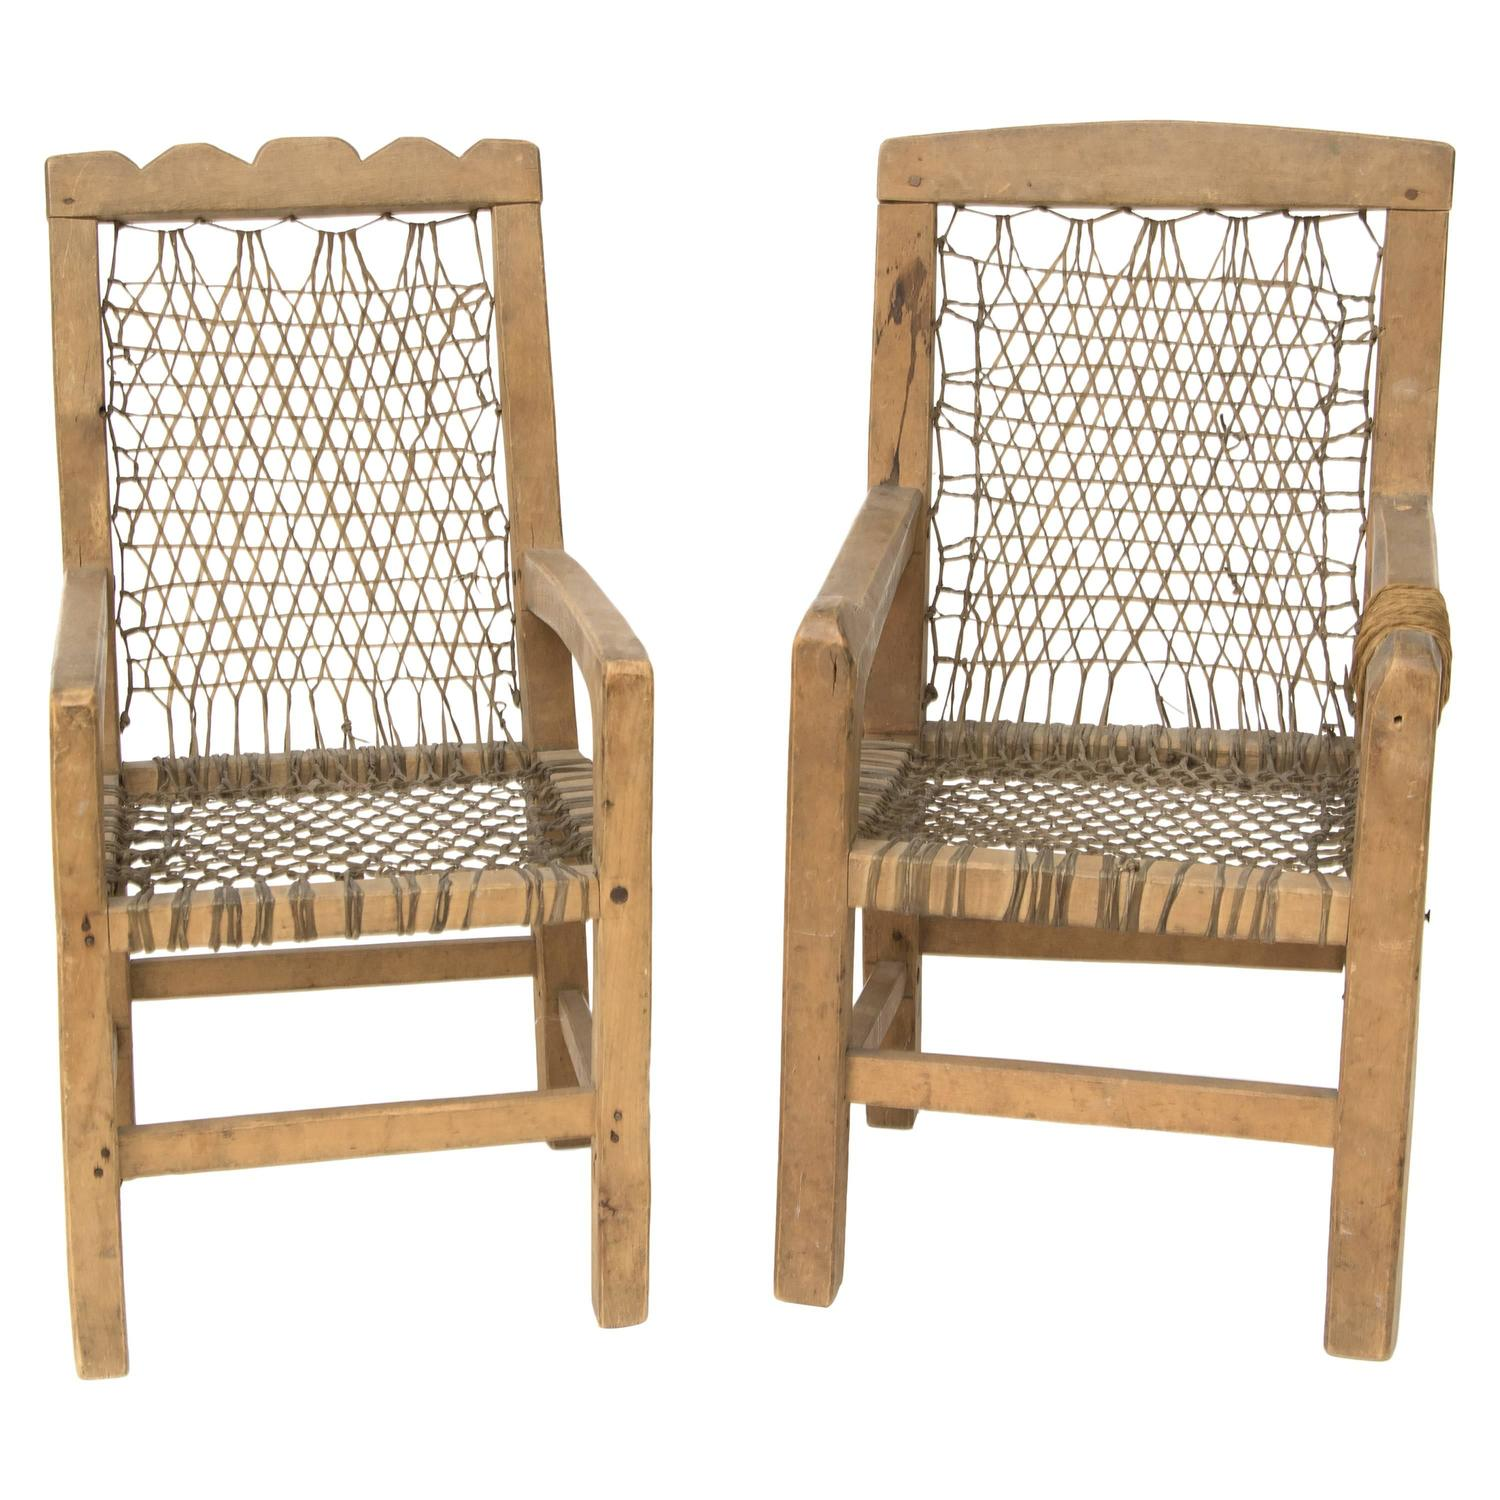 Antique native american miniature chairs northwest coast for Furniture northwest